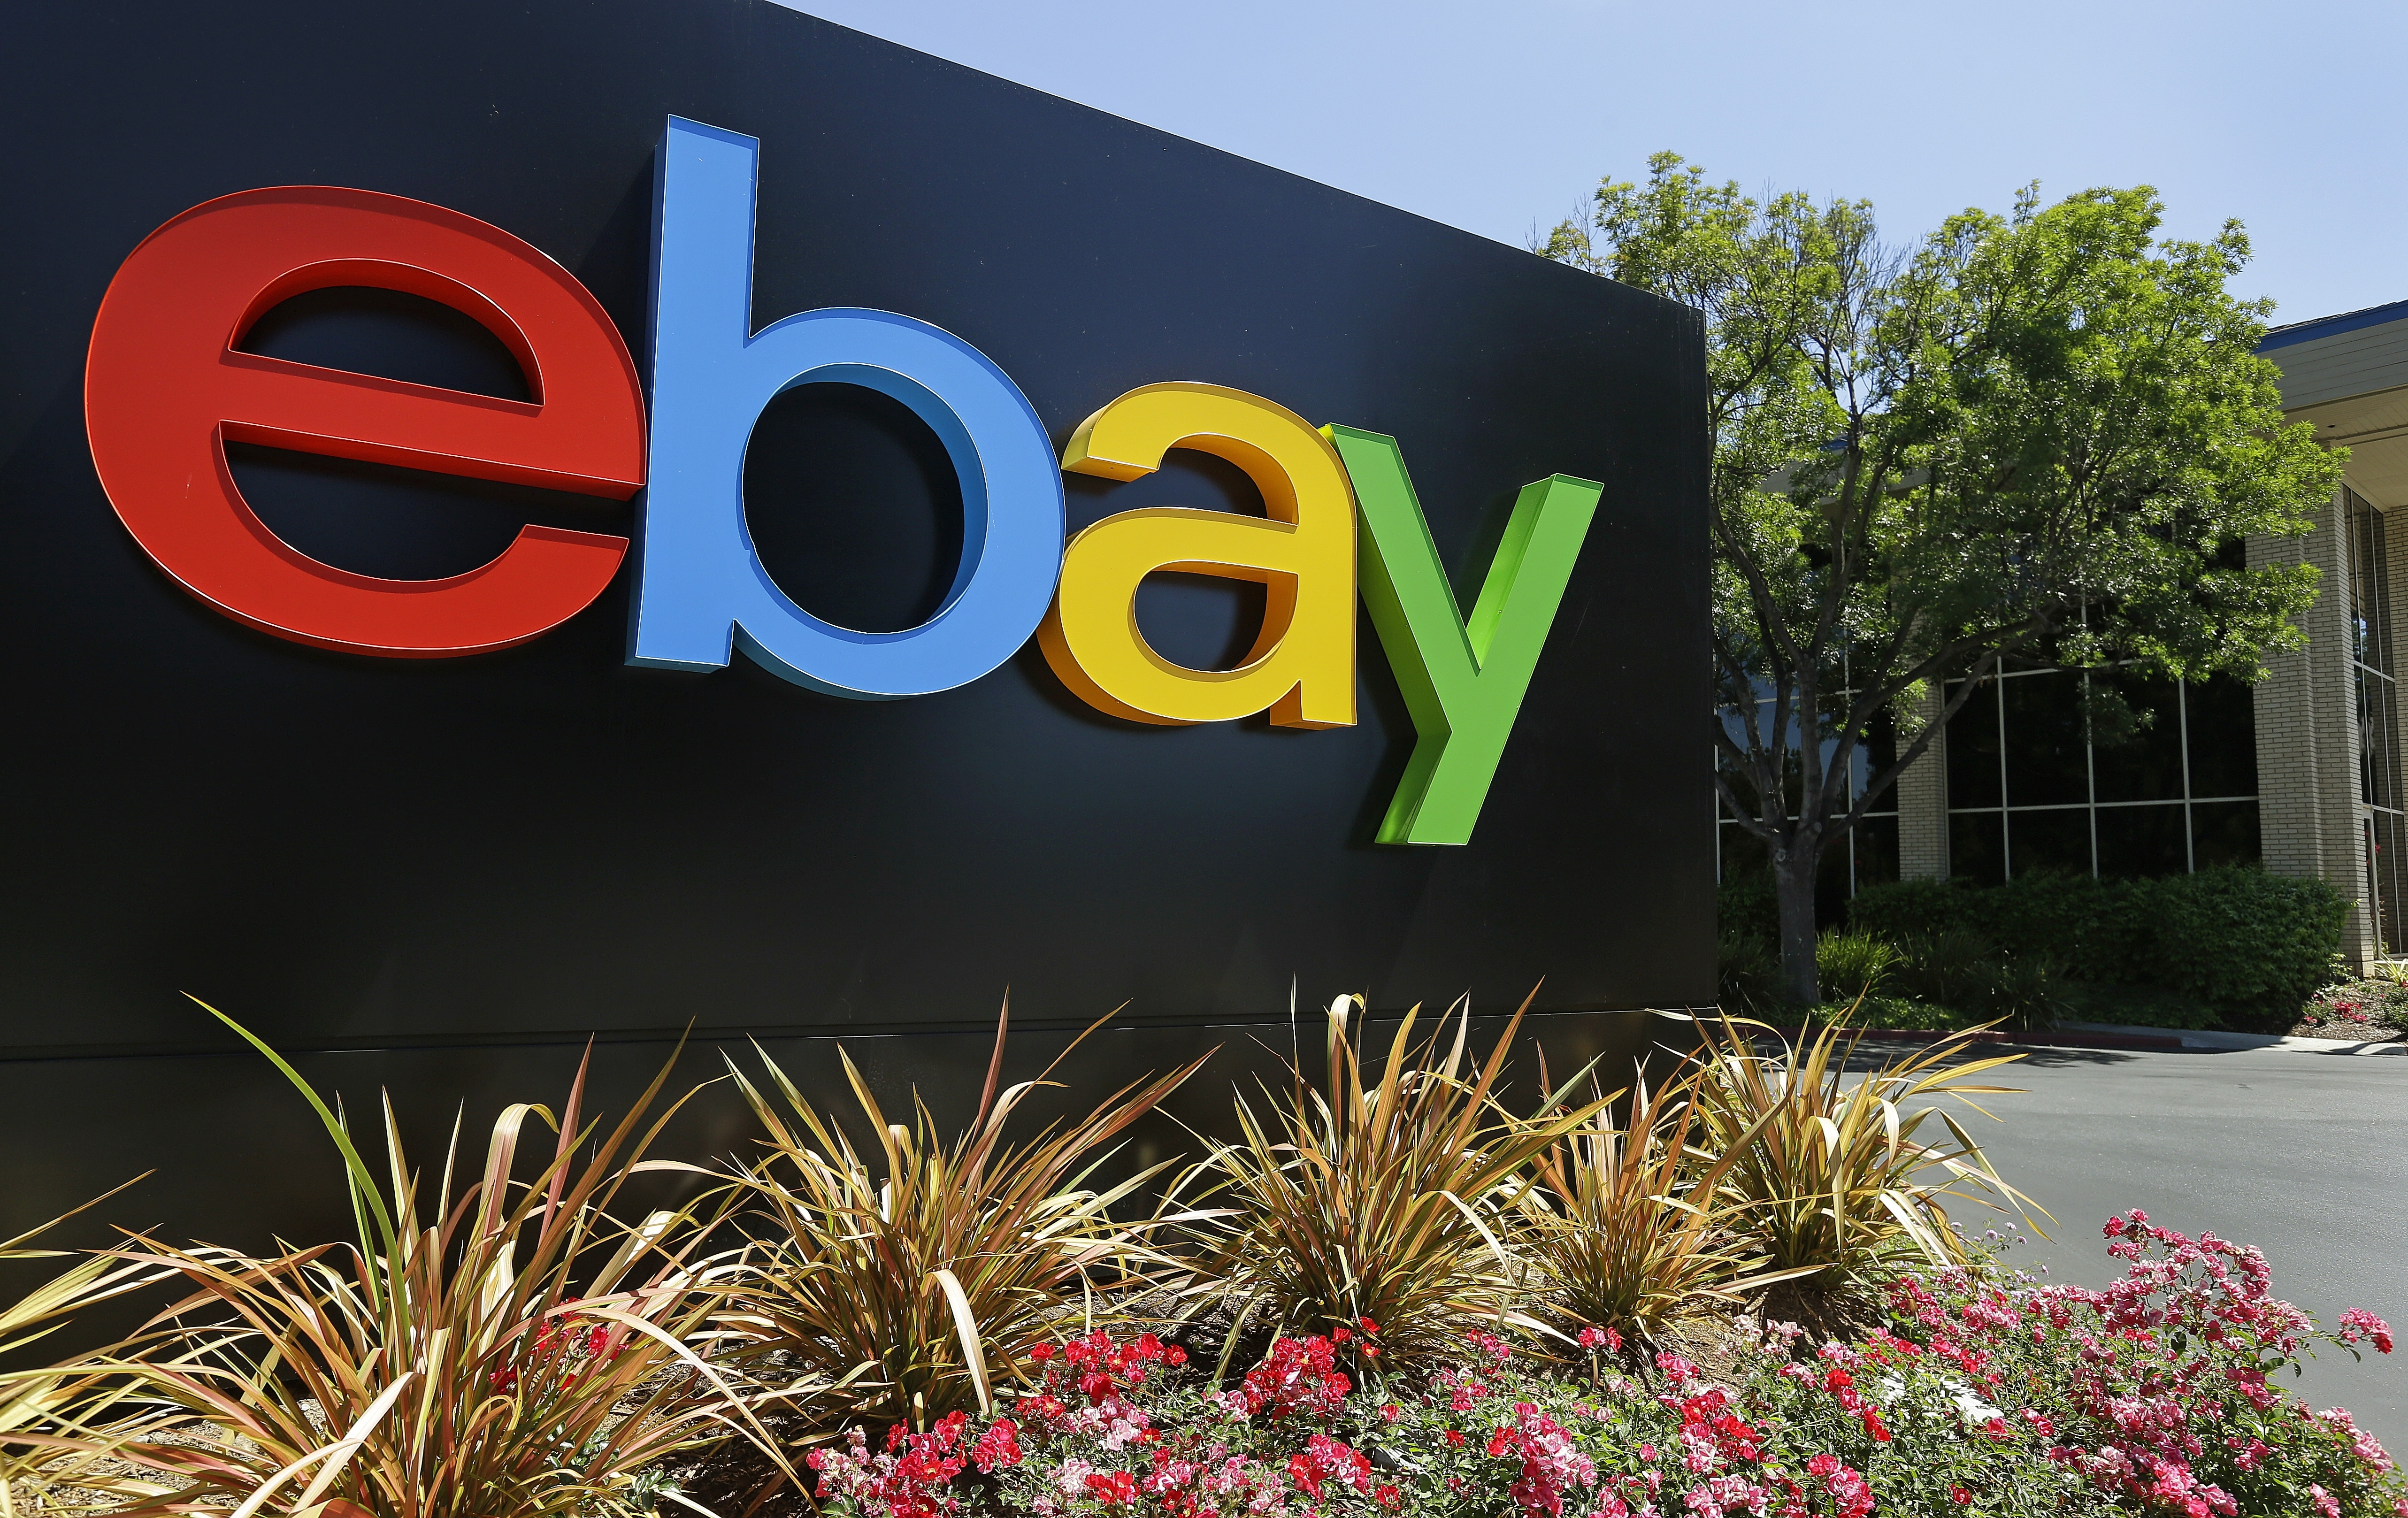 Feds Ebay Staff Sent Spiders Roaches To Harass Couple Texomashomepage Com